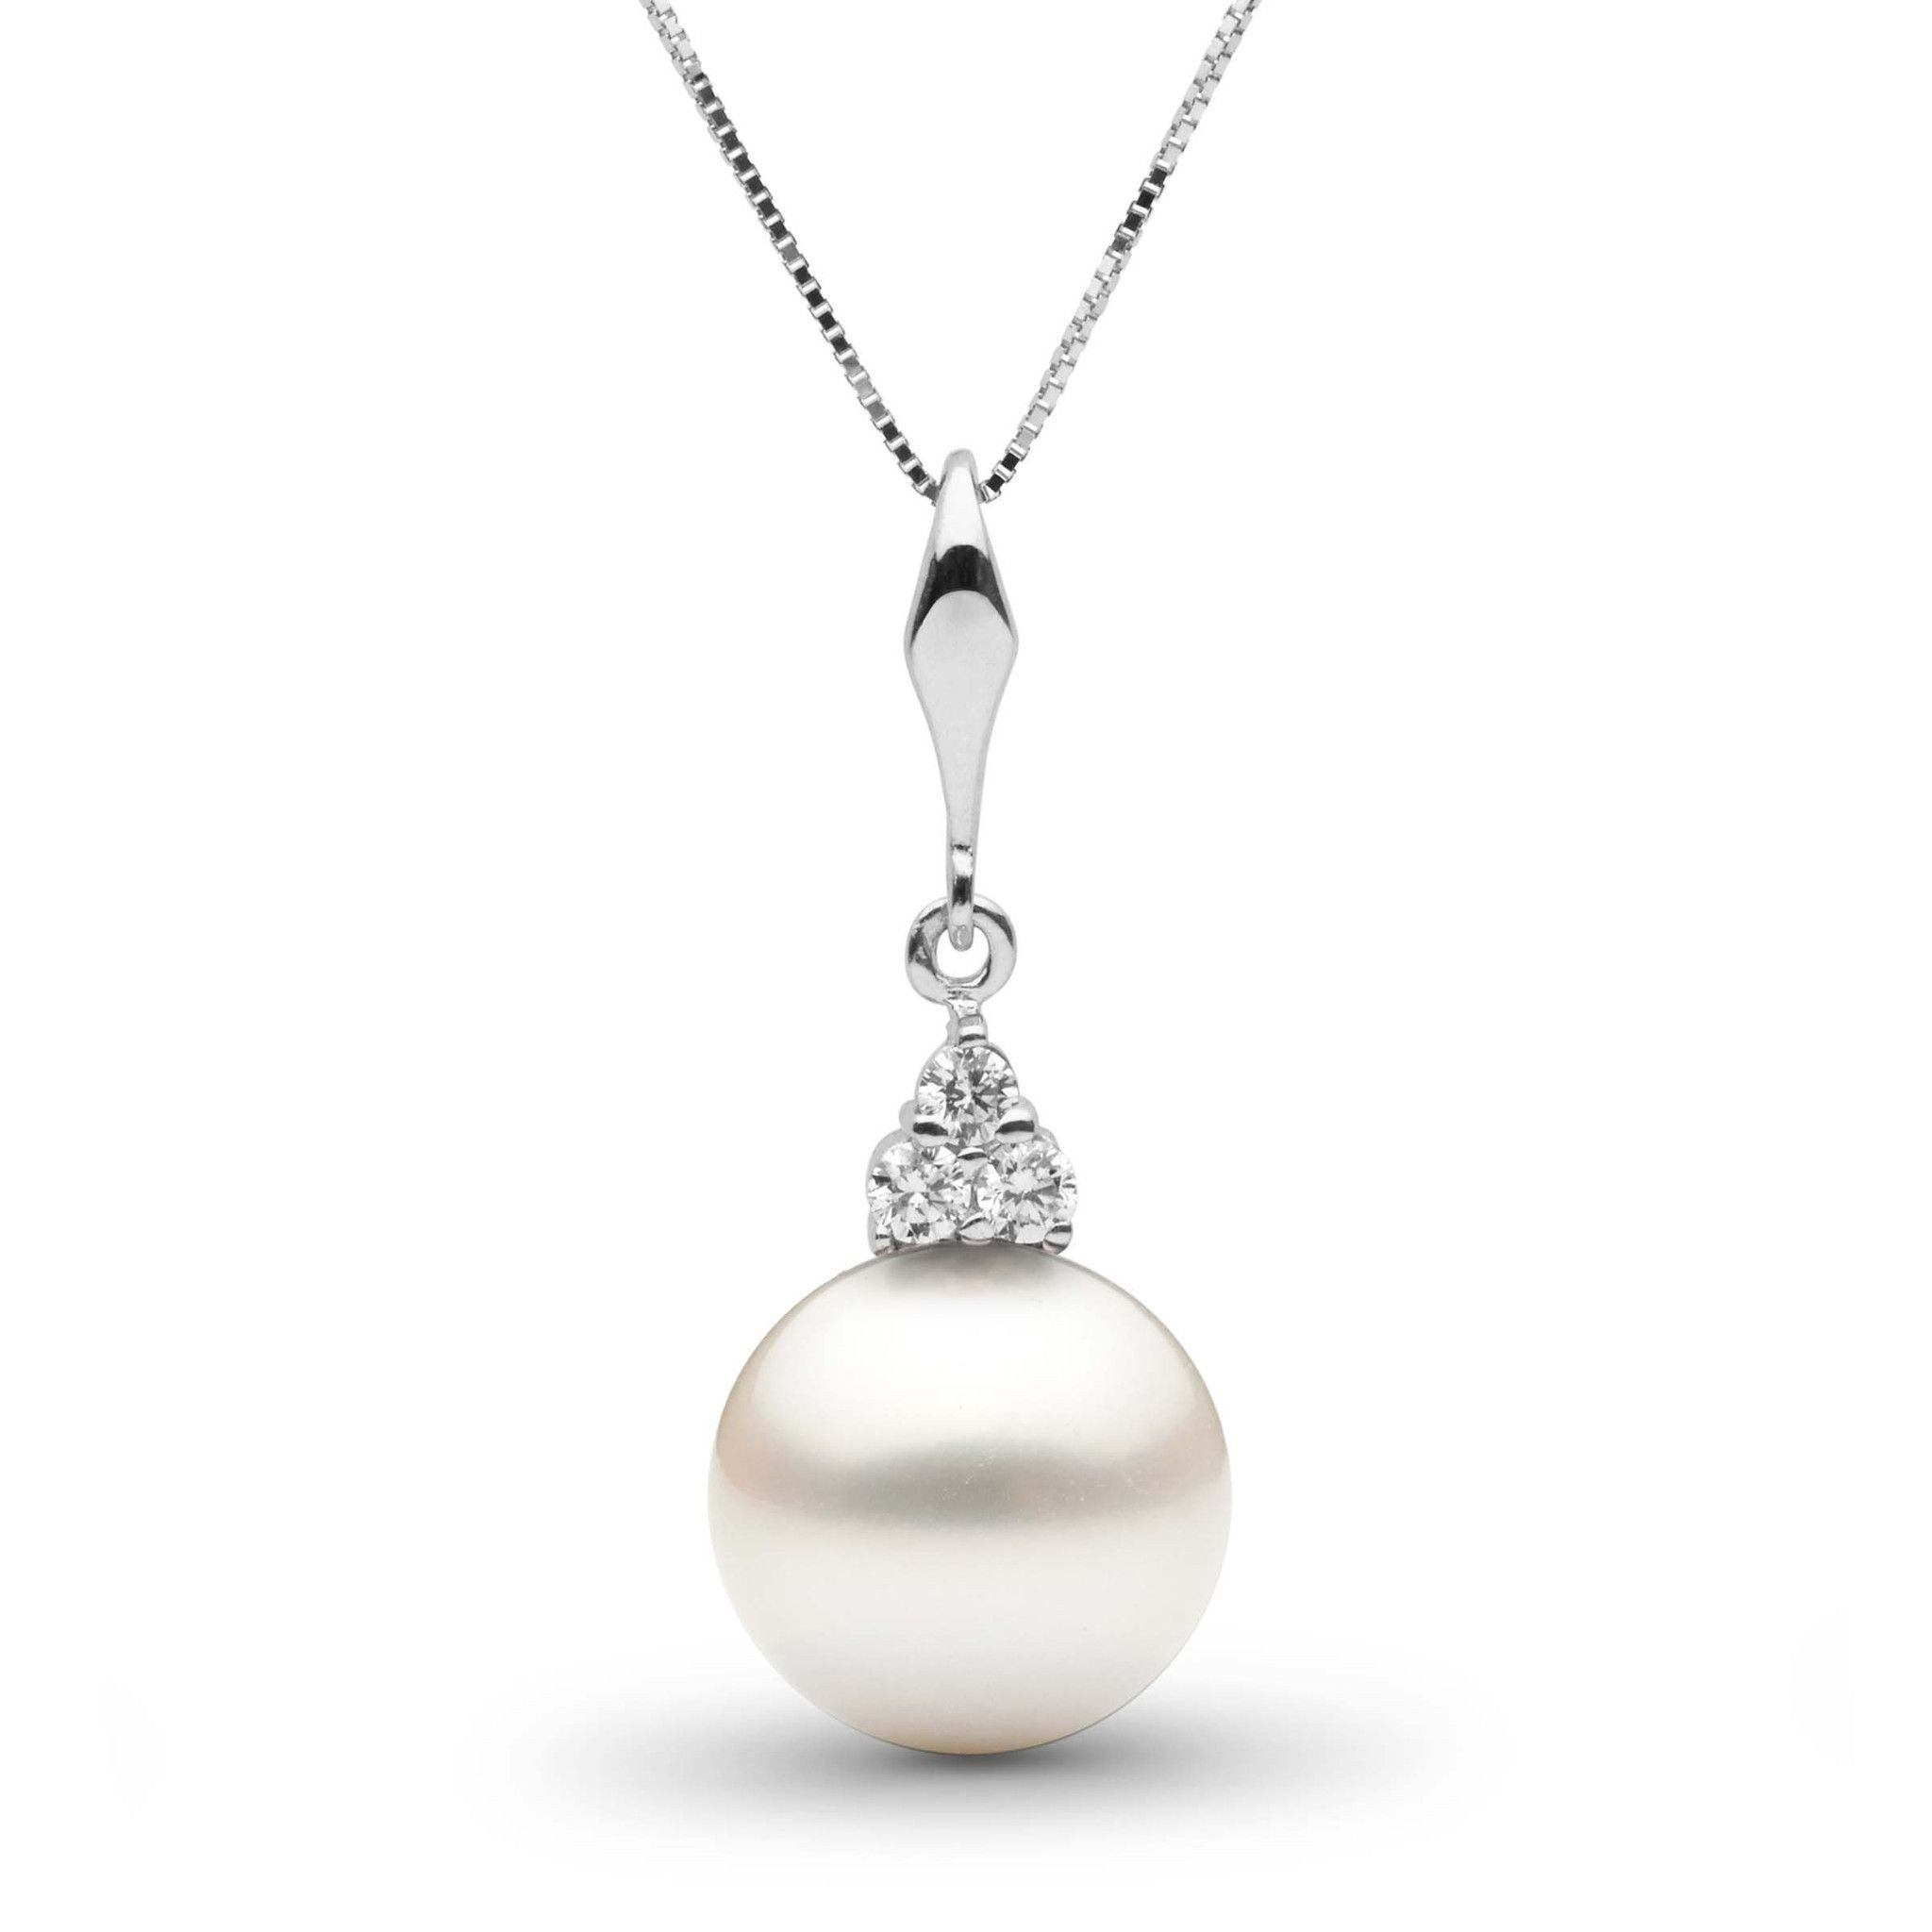 Always Collection White 10.0-11.0 mm South Sea Pearl and Diamond Pendant